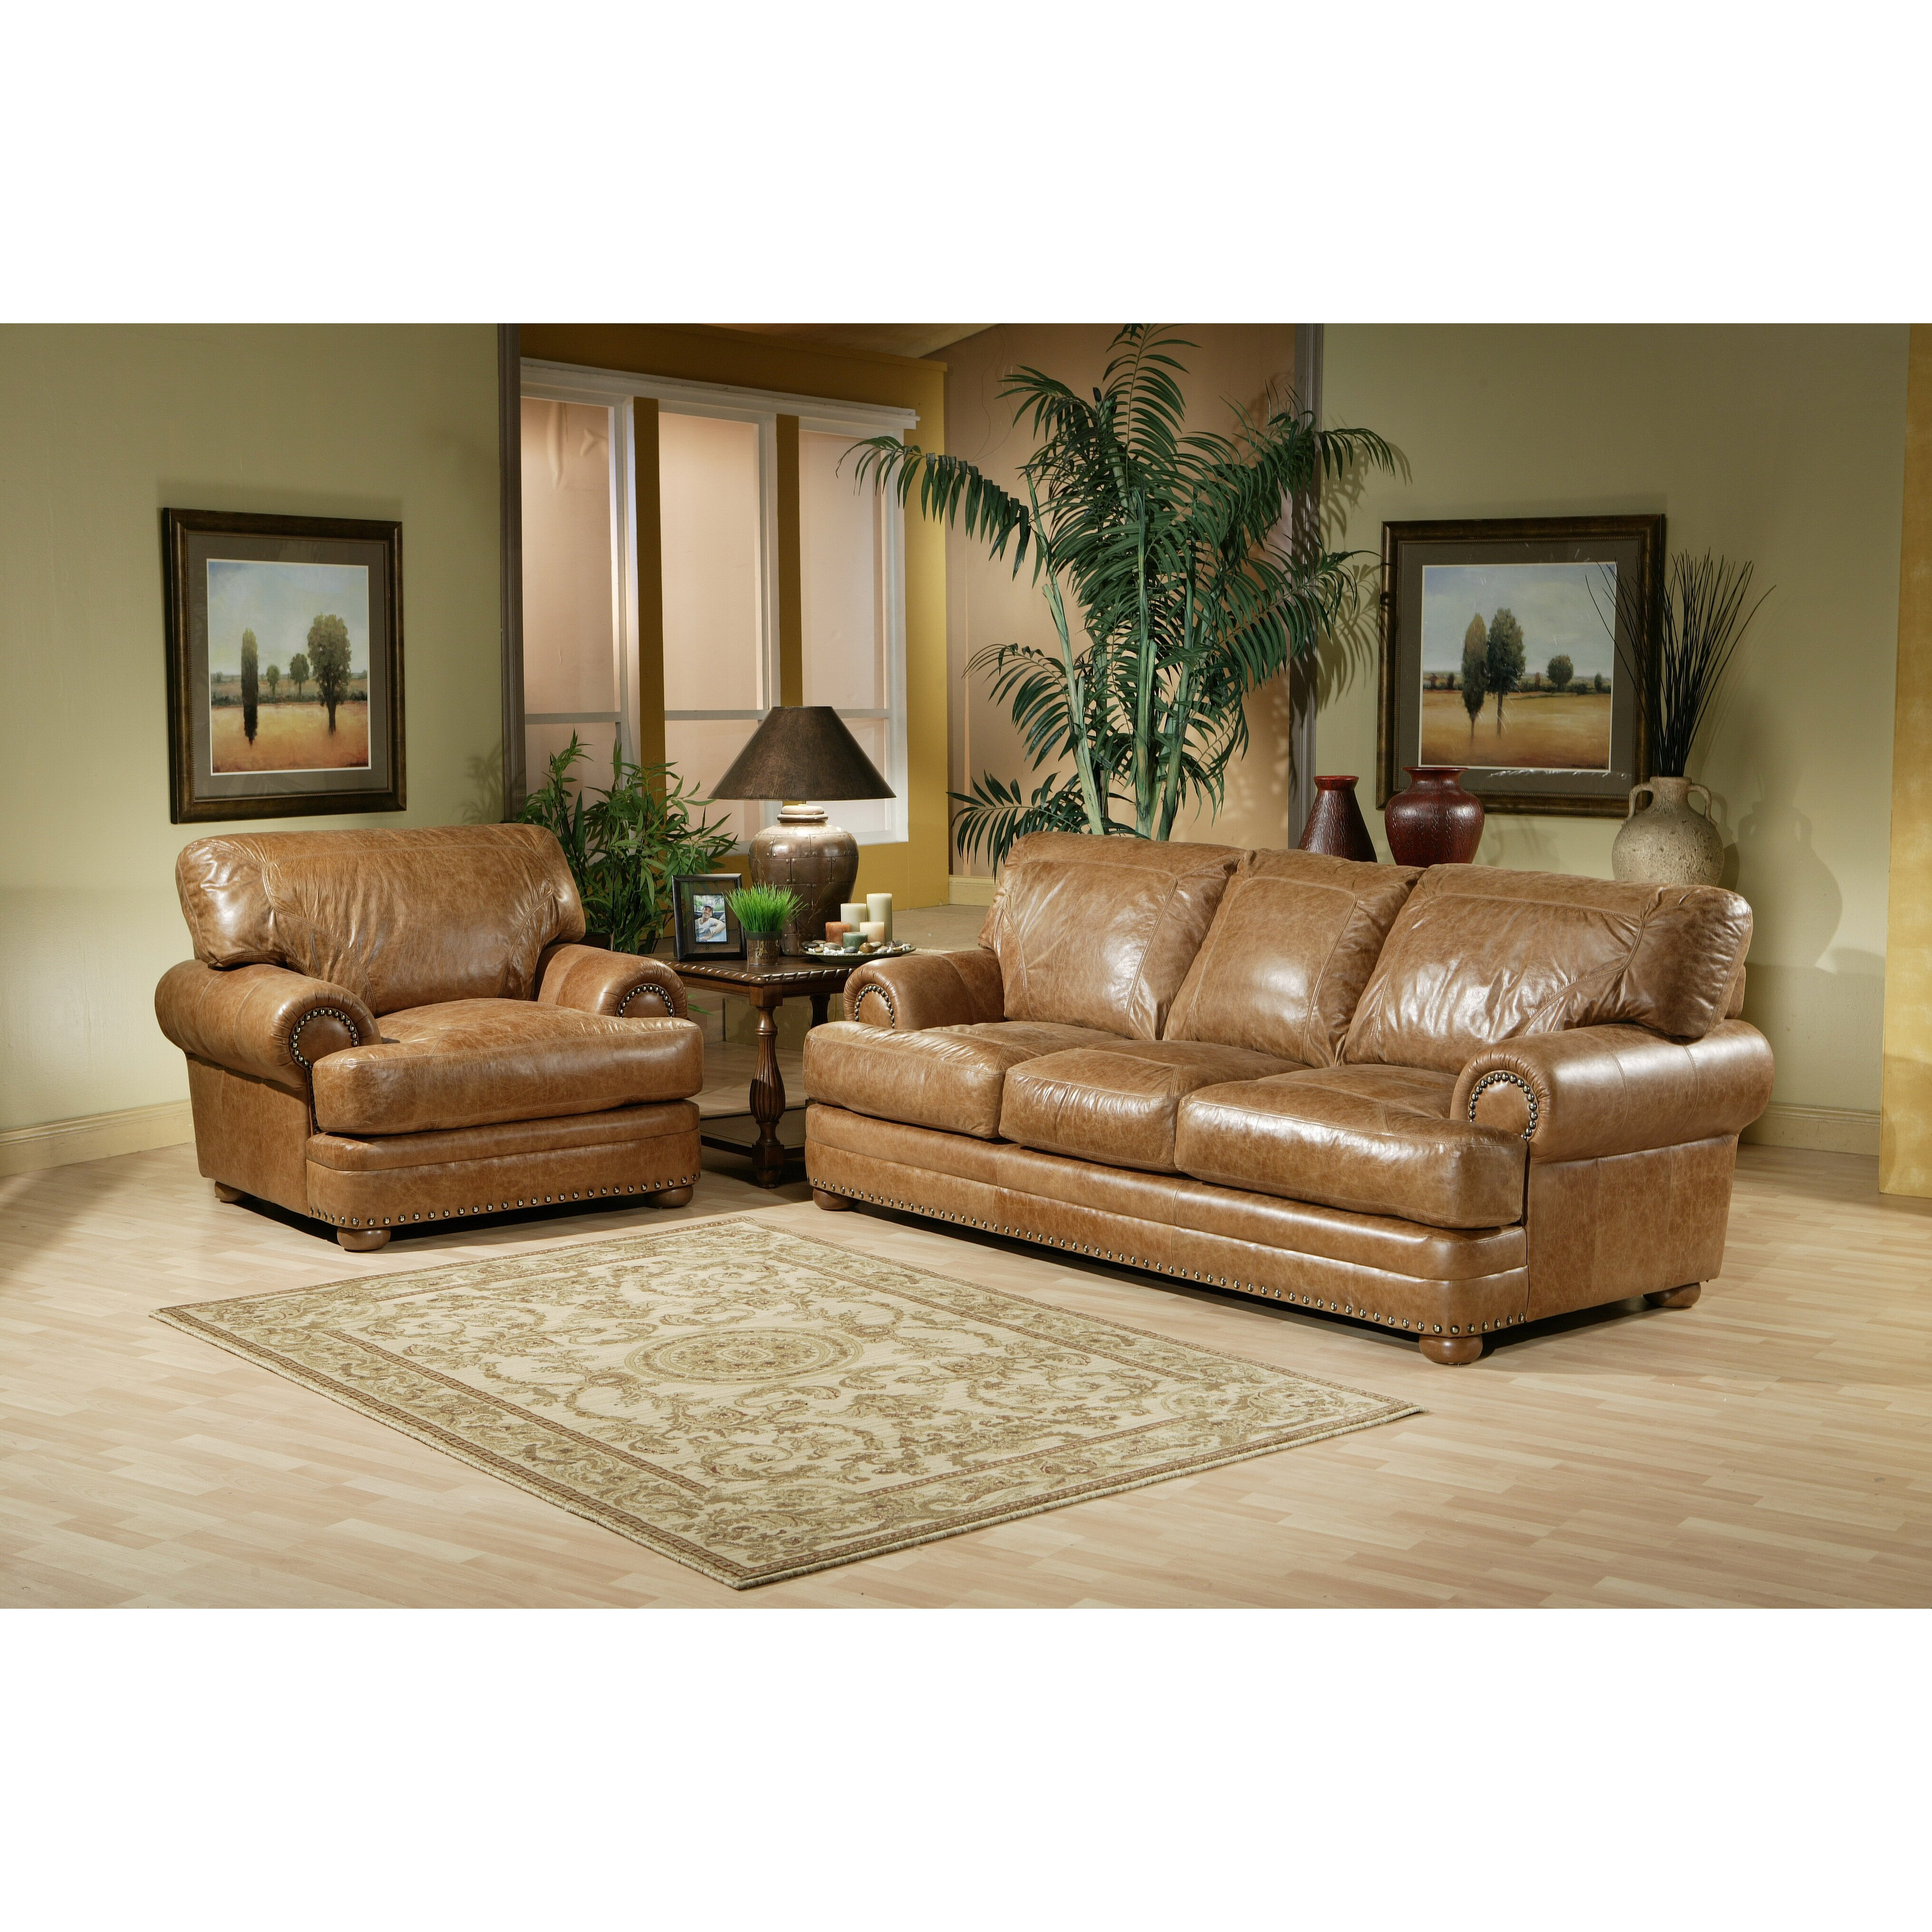 Leather Living Room Sets For Omnia Leather Houston Leather Living Room Set Reviews Wayfair